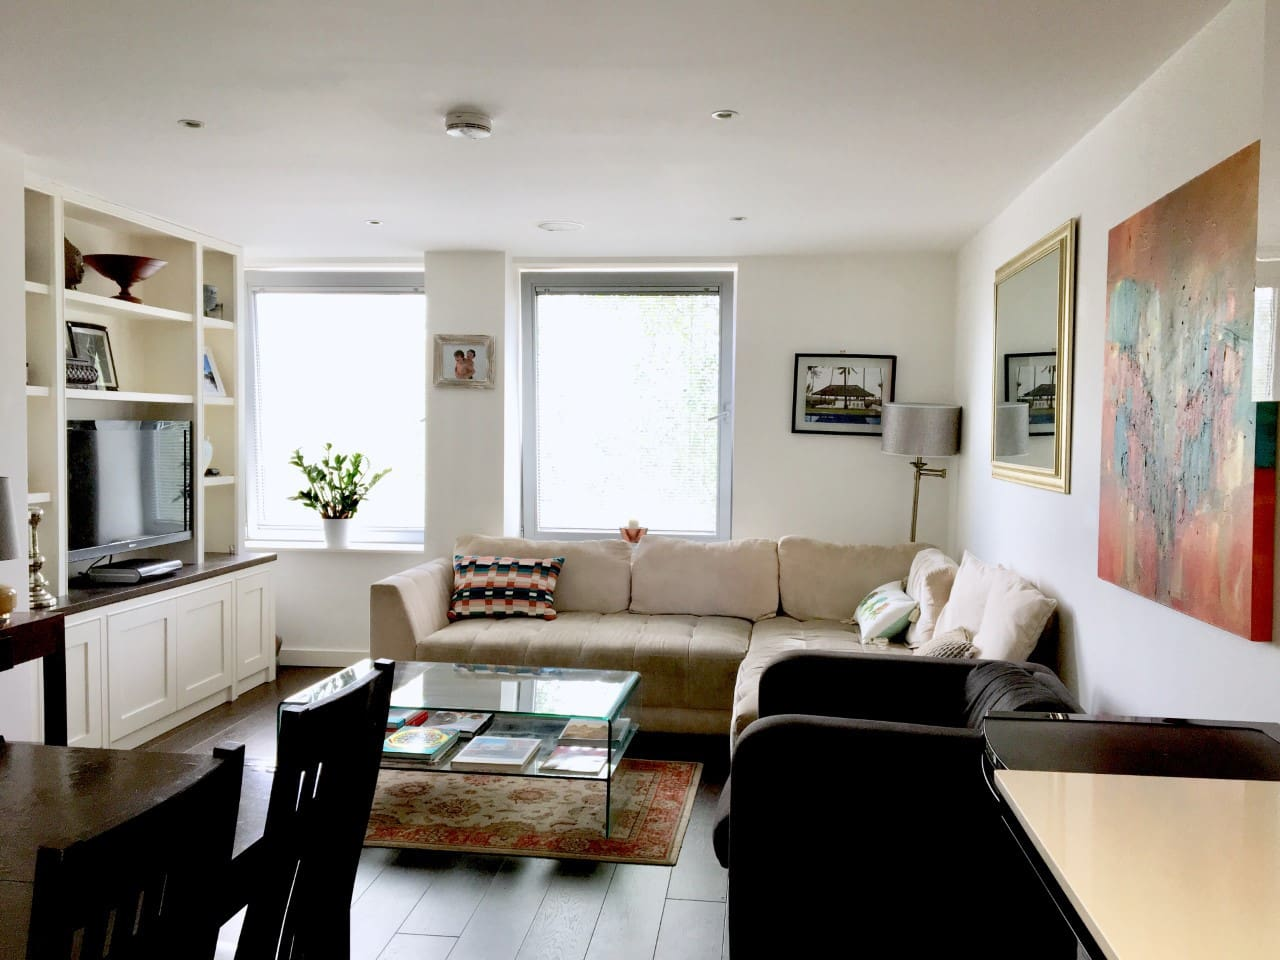 Front room and dining area, extended table can sit 6 people comfortably.